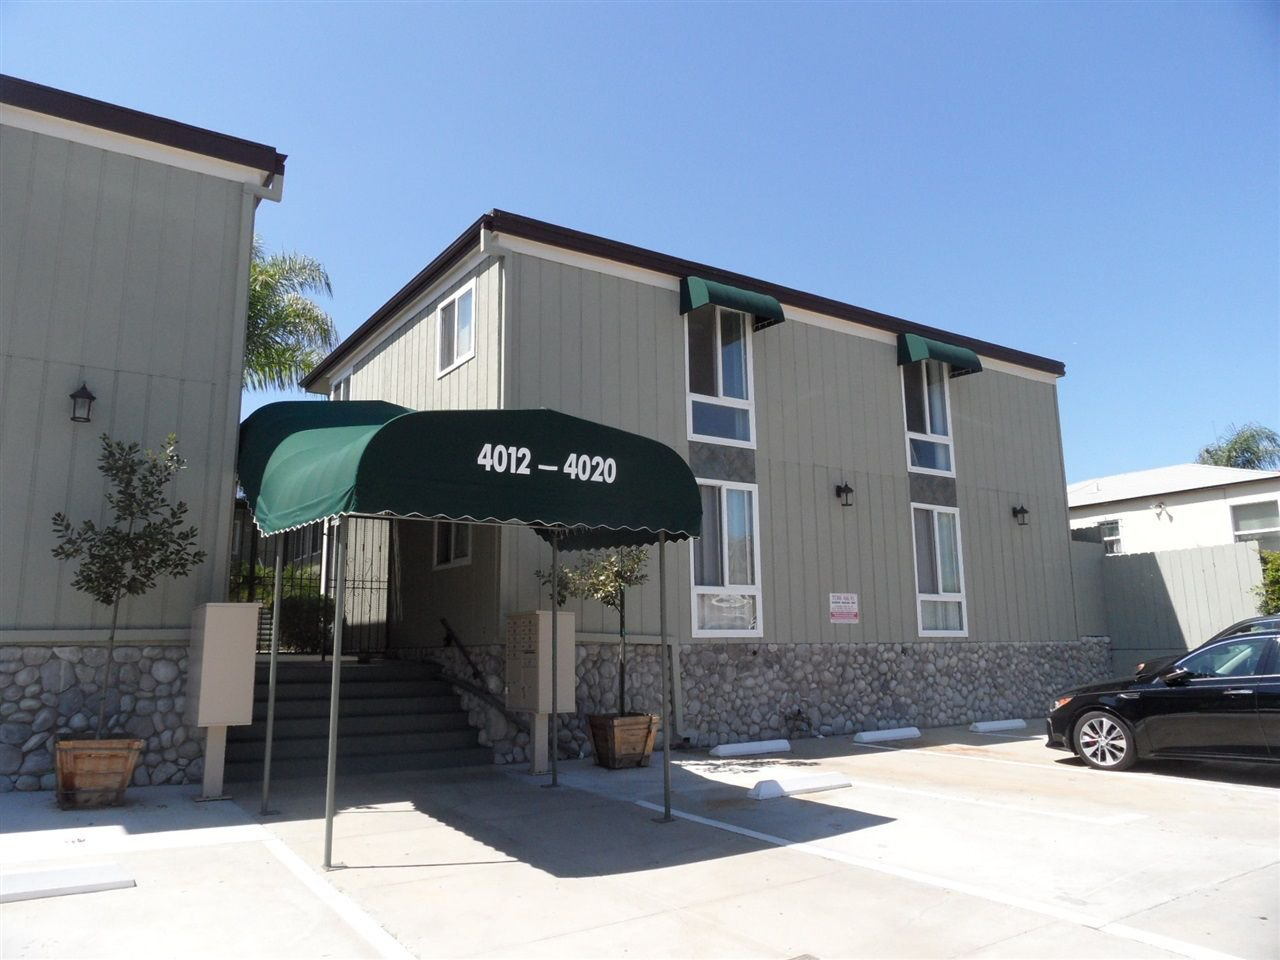 Main Photo: NORTH PARK Condo for sale : 2 bedrooms : 4020 Mississippi St #5 in San Diego